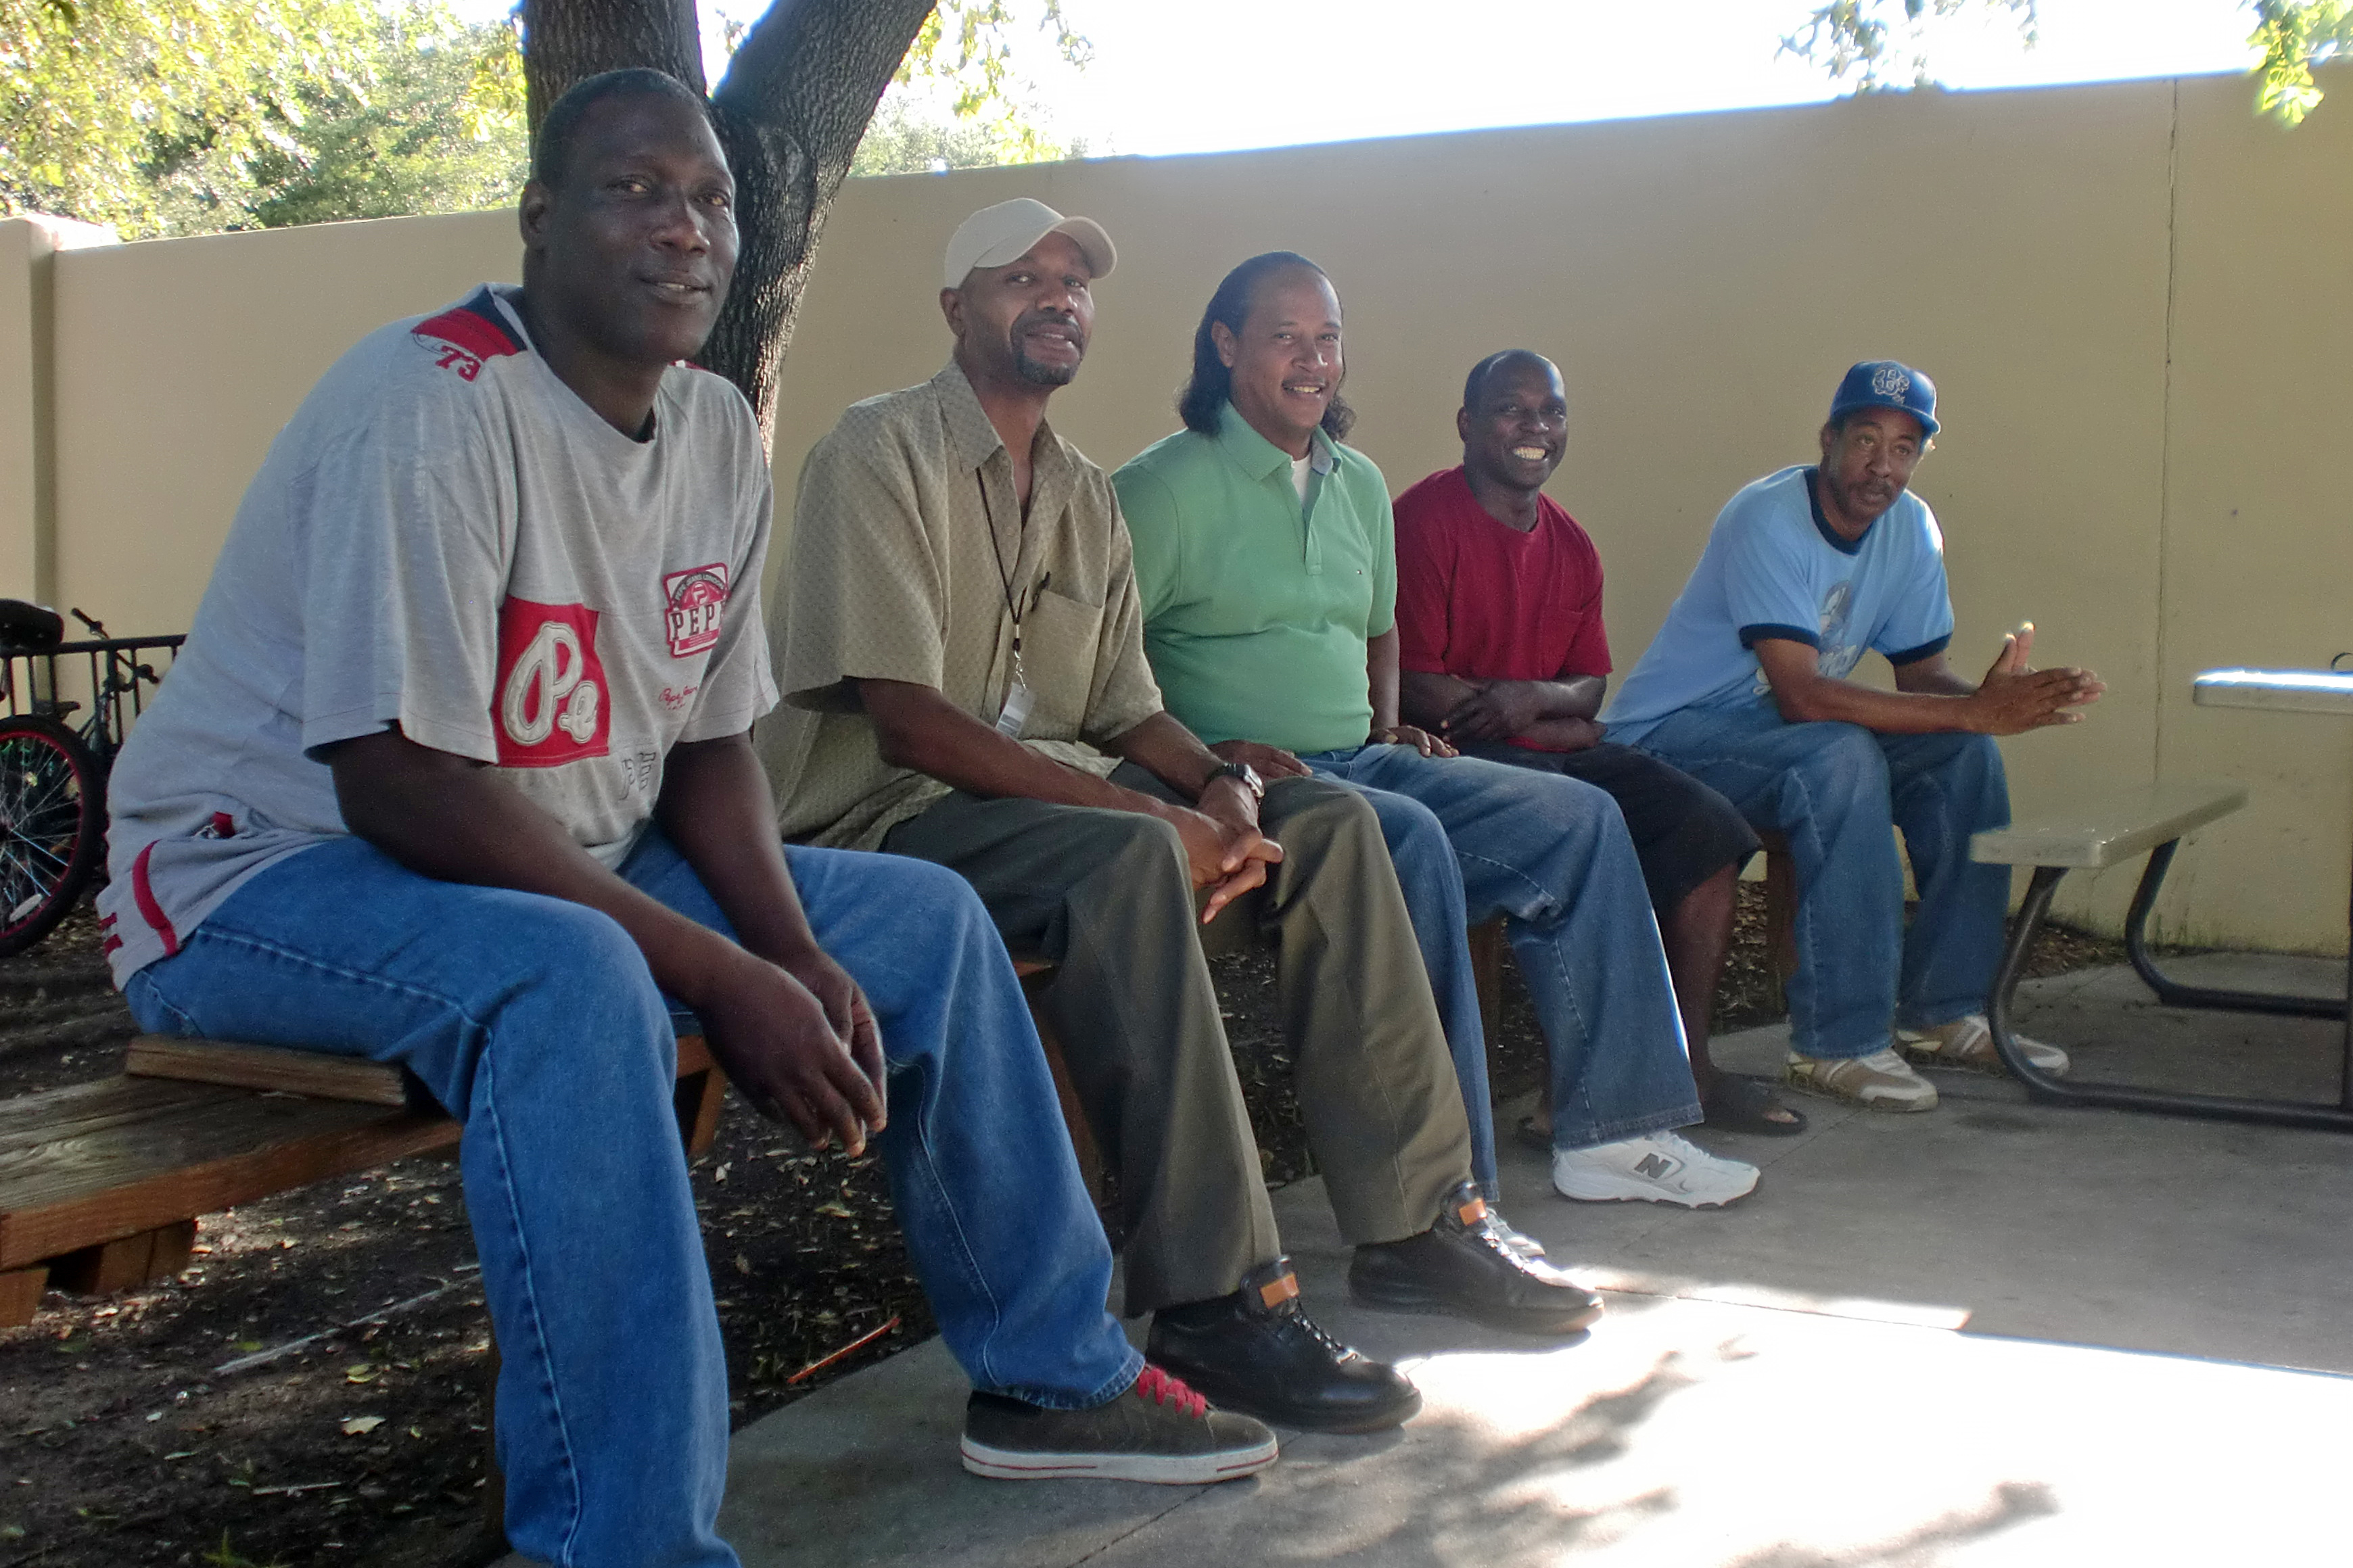 Former First Steps Substance Abuse Recovery Program clients